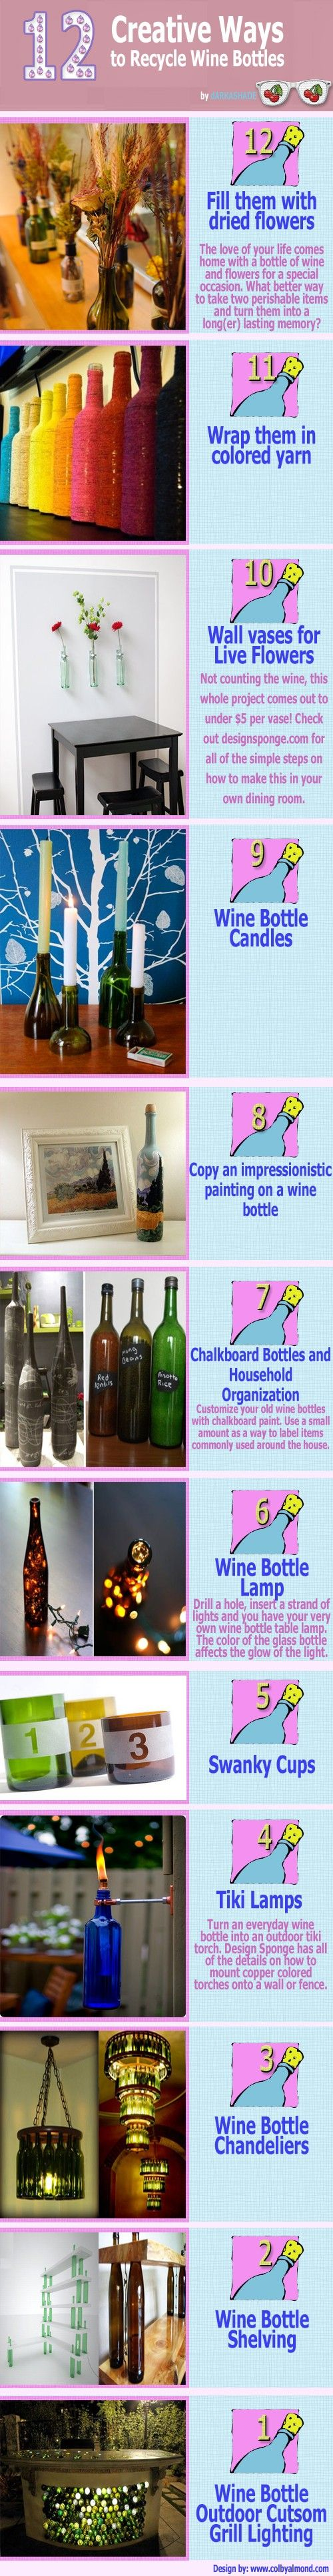 203 best images about game of thrones party on pinterest for Creative ideas for empty wine bottles